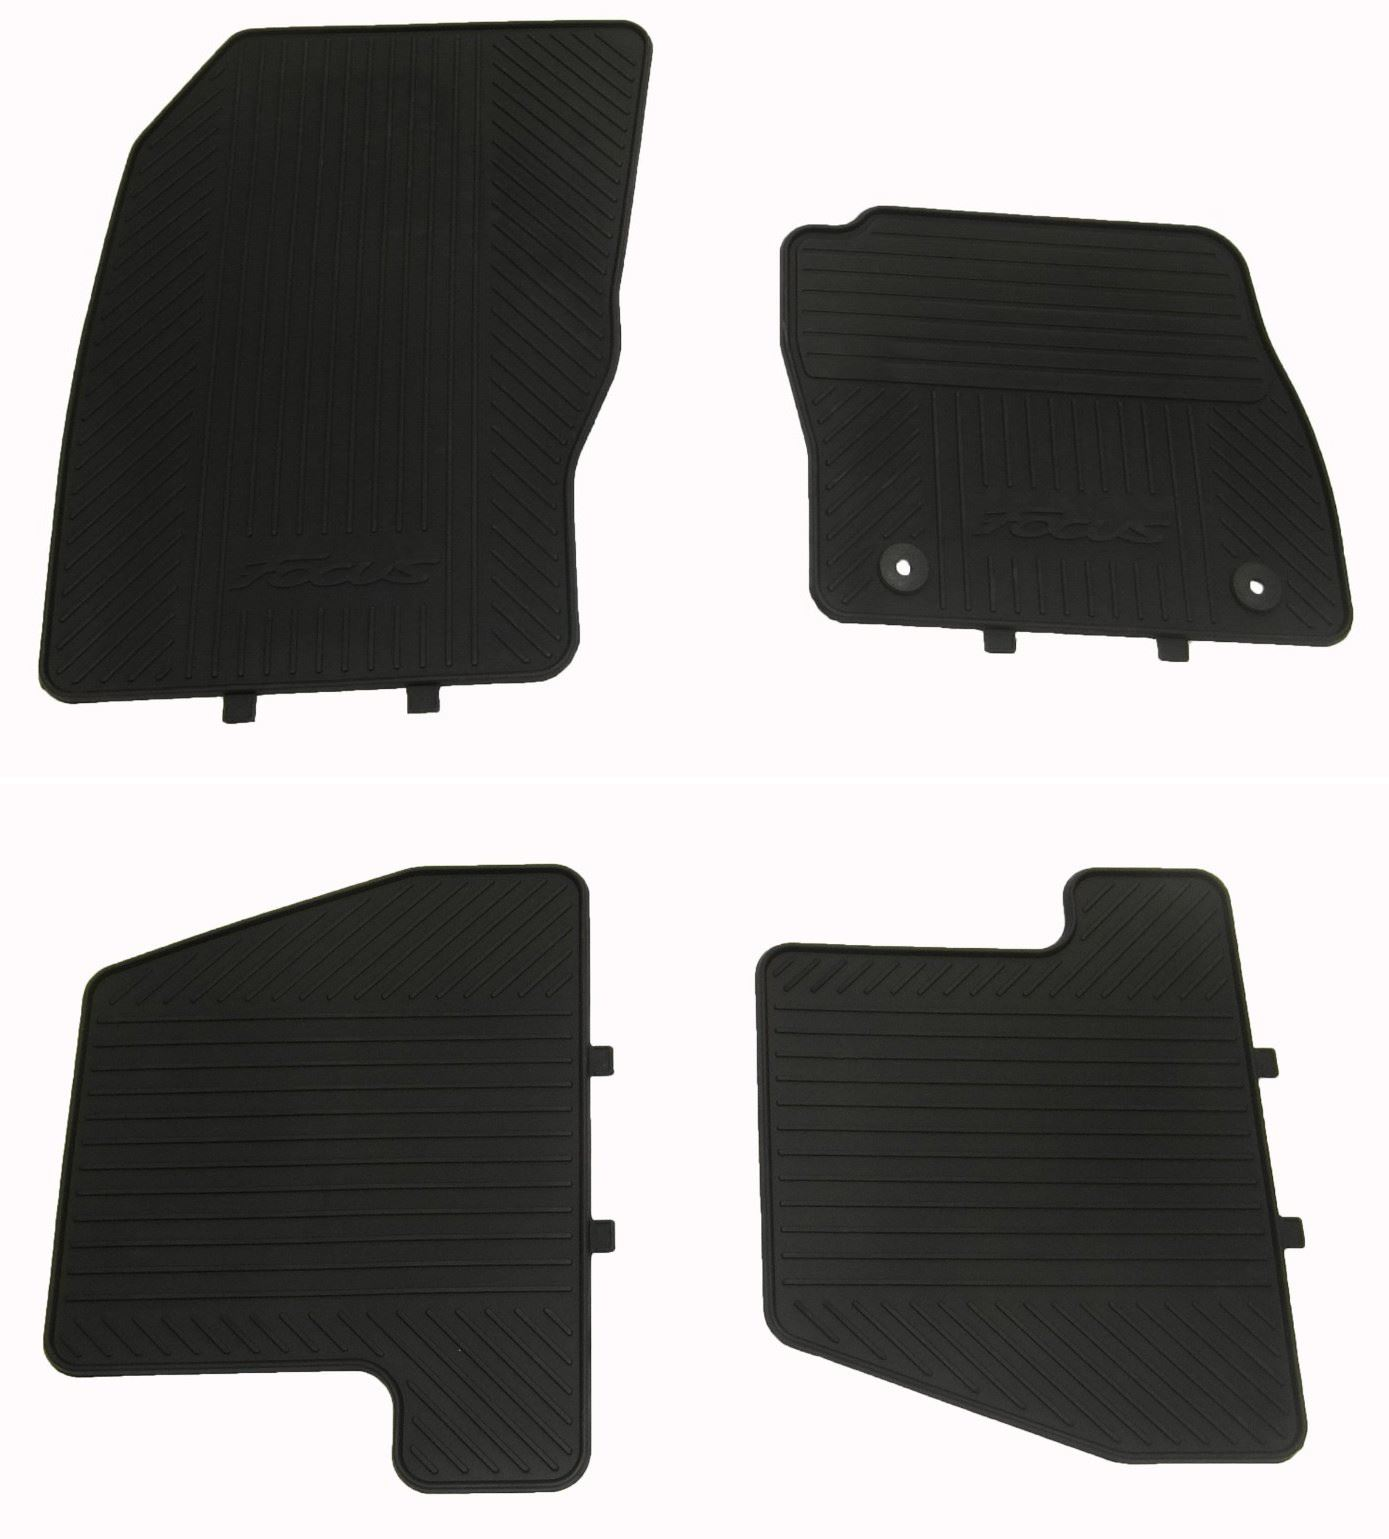 Genuine FORD FOCUS 2011- MK3 Rubber Floor Mats Front